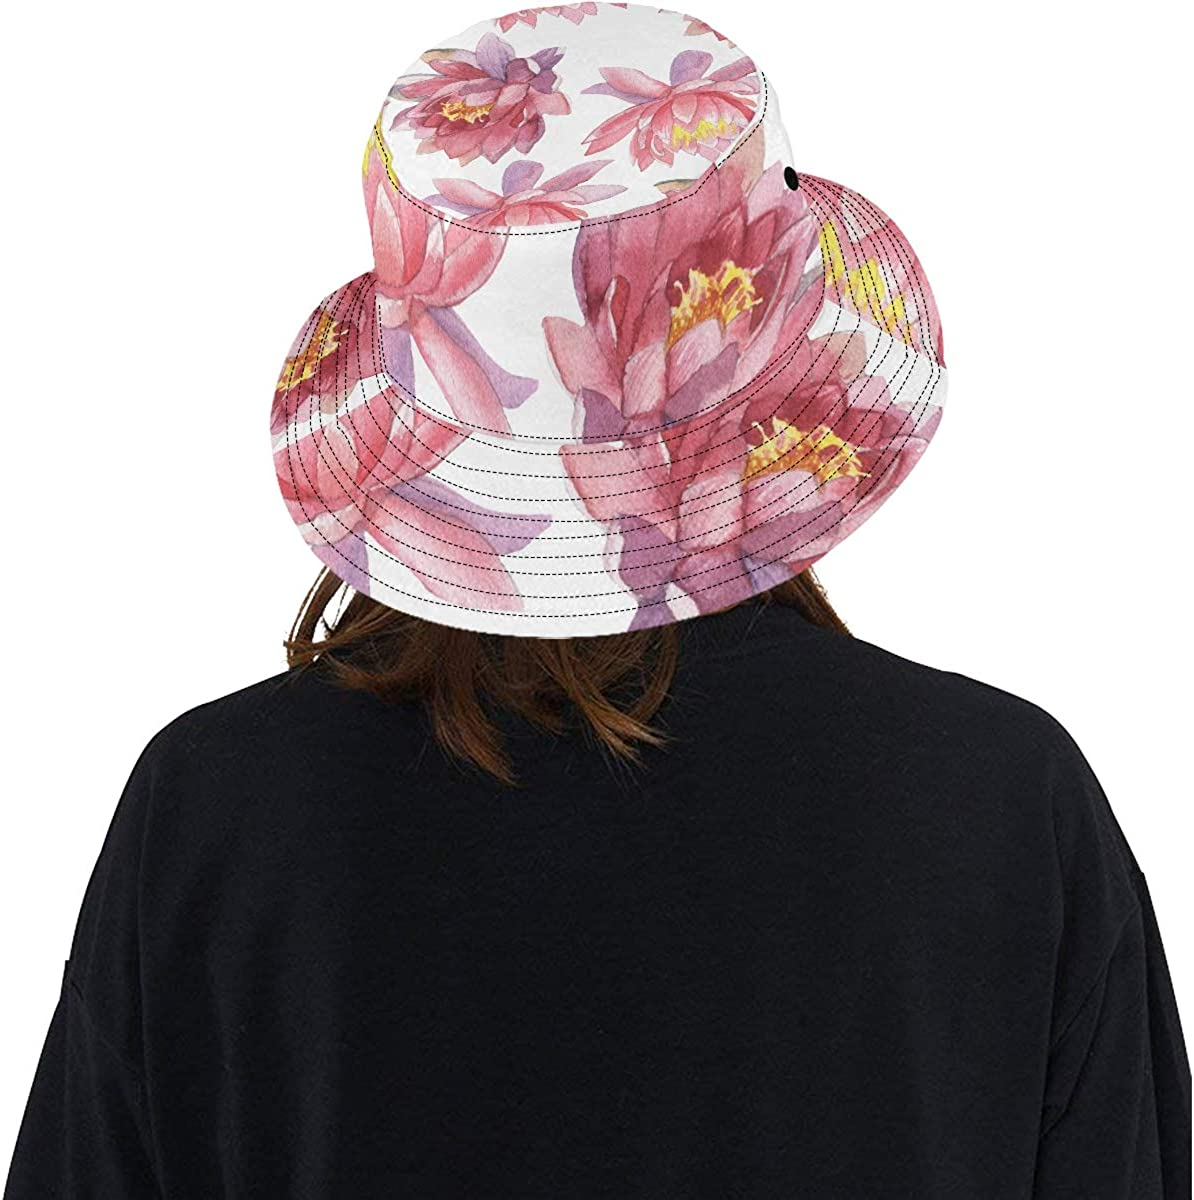 Painted Lotus Summer Flower Summer Unisex Fishing Sun Top Bucket Hats for Kid Teens Women and Men with Packable Fisherman Cap for Outdoor Baseball Sport Picnic